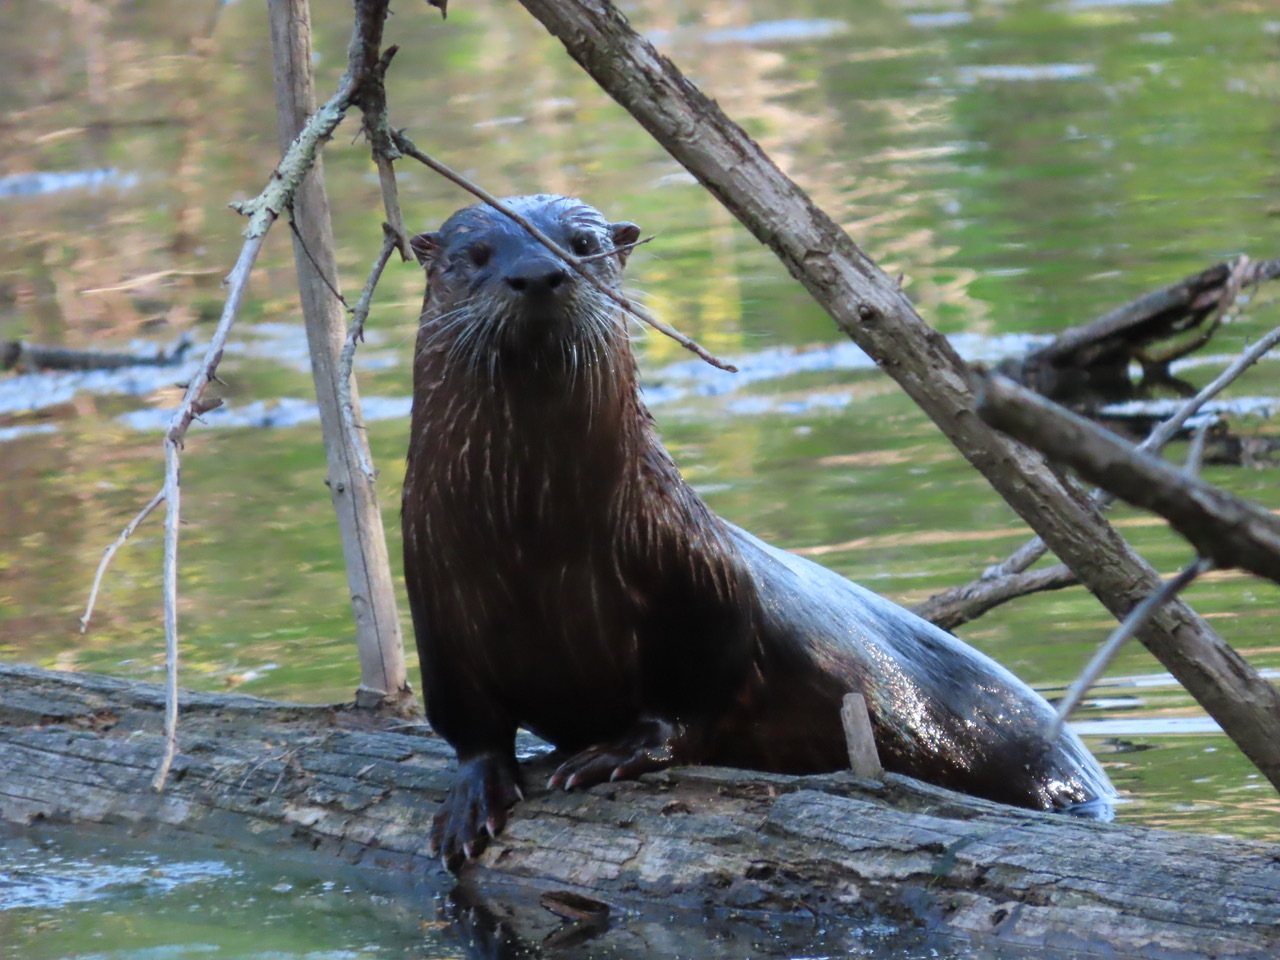 A curious otter in Huntington poses for a photo.